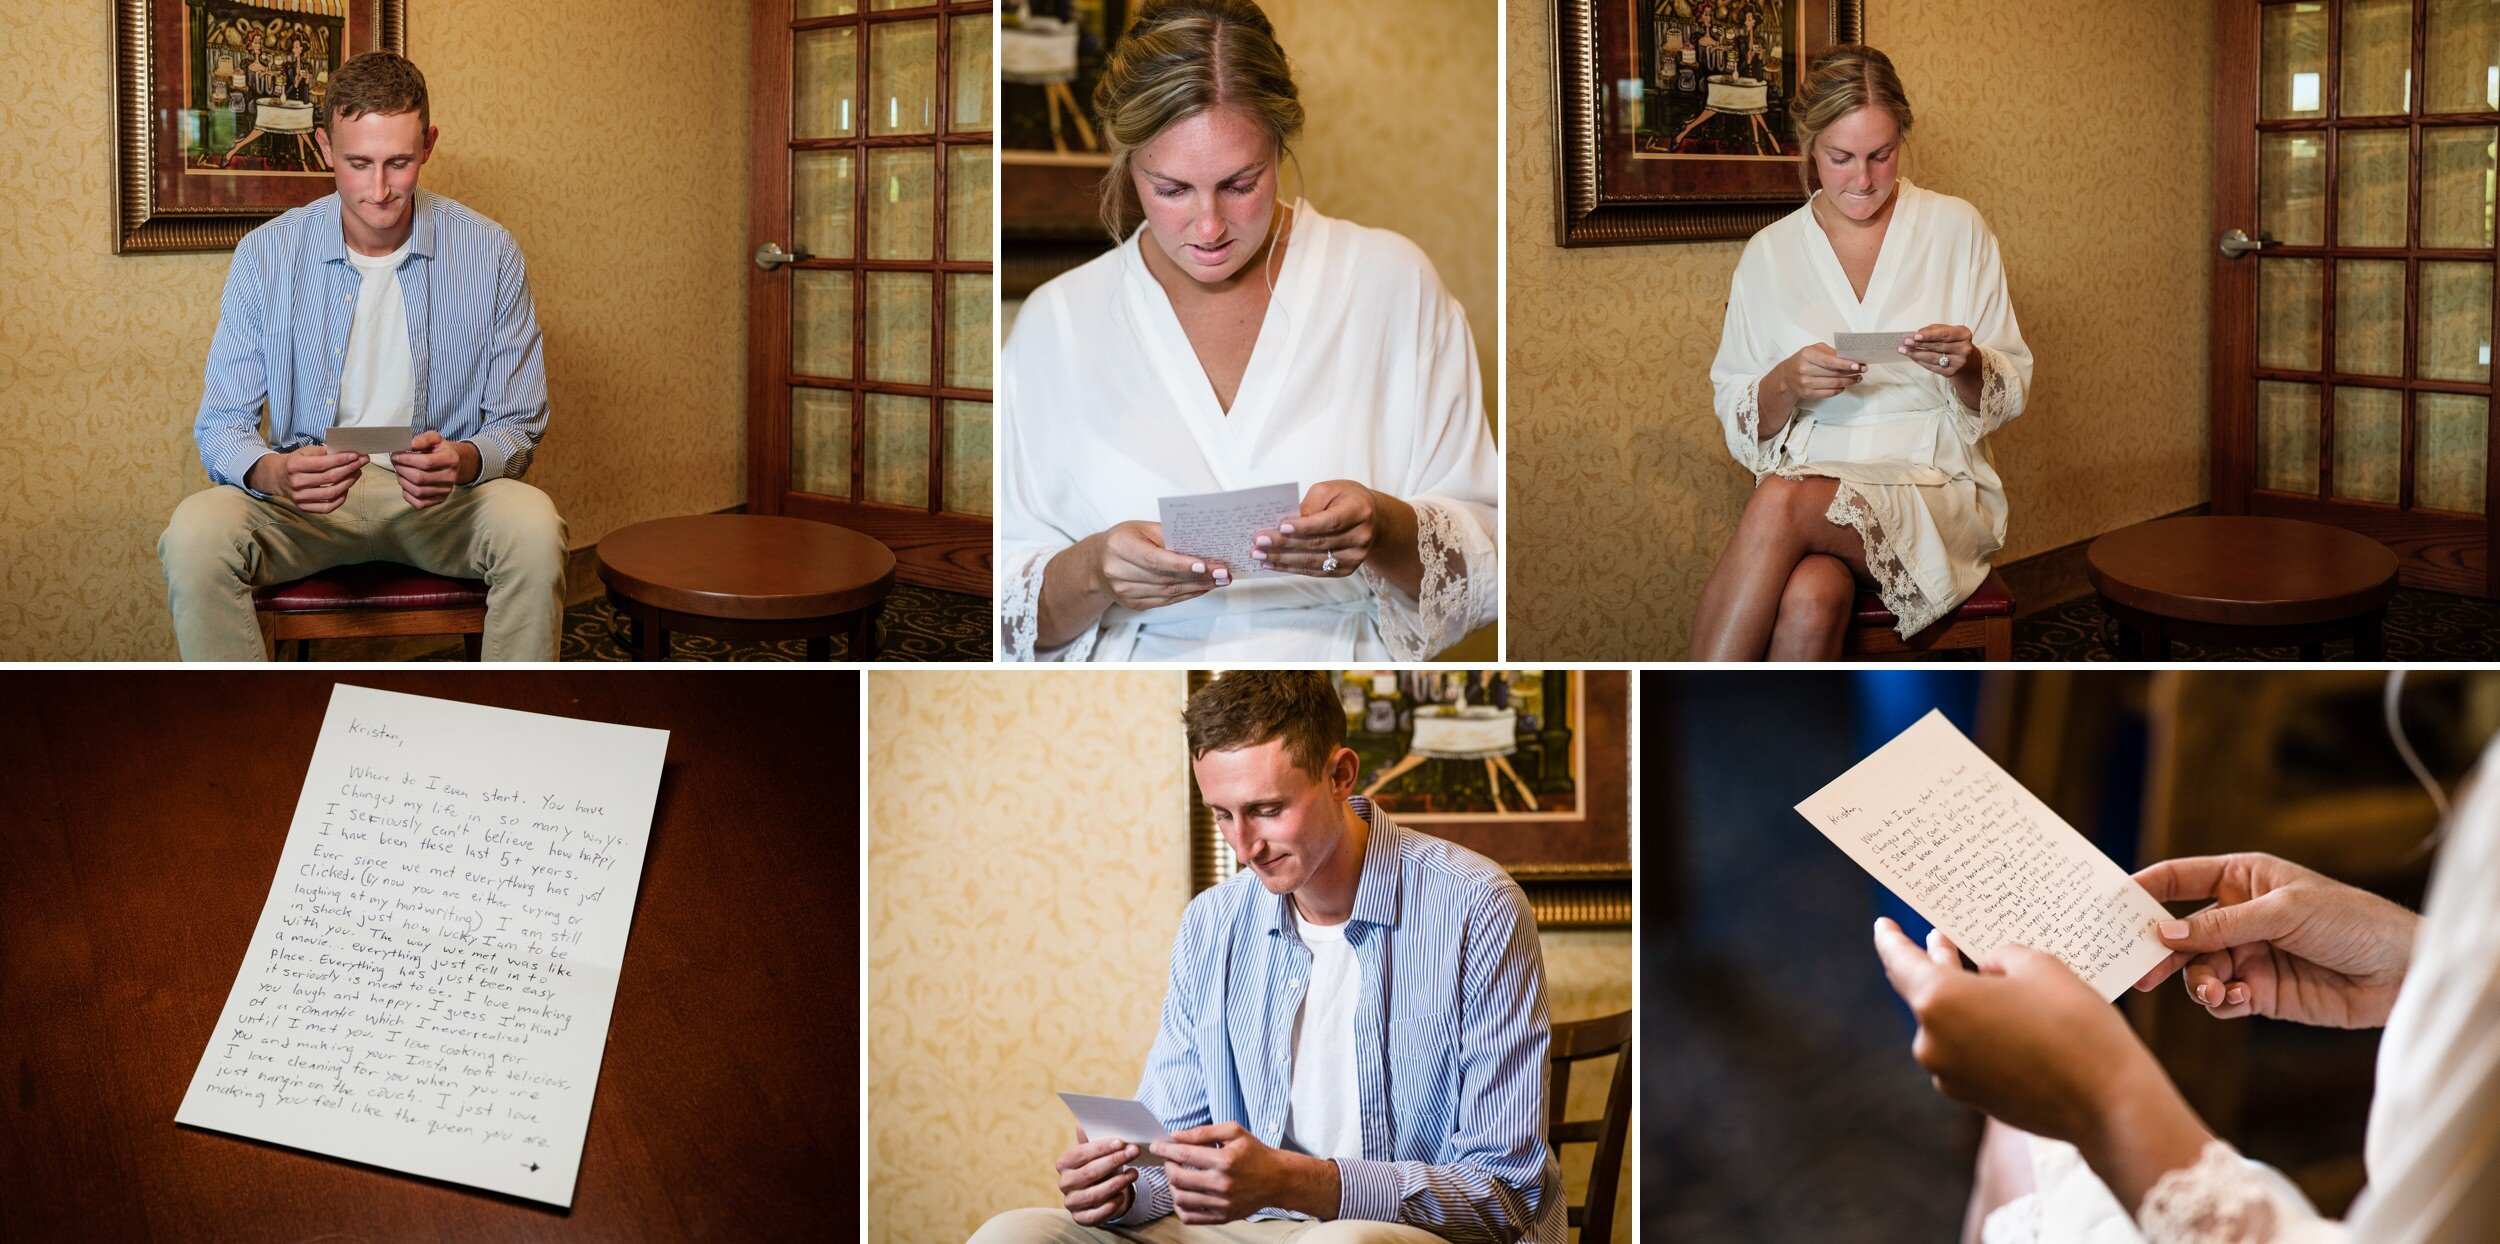 Bride and groom read each other's love letters on wedding day.